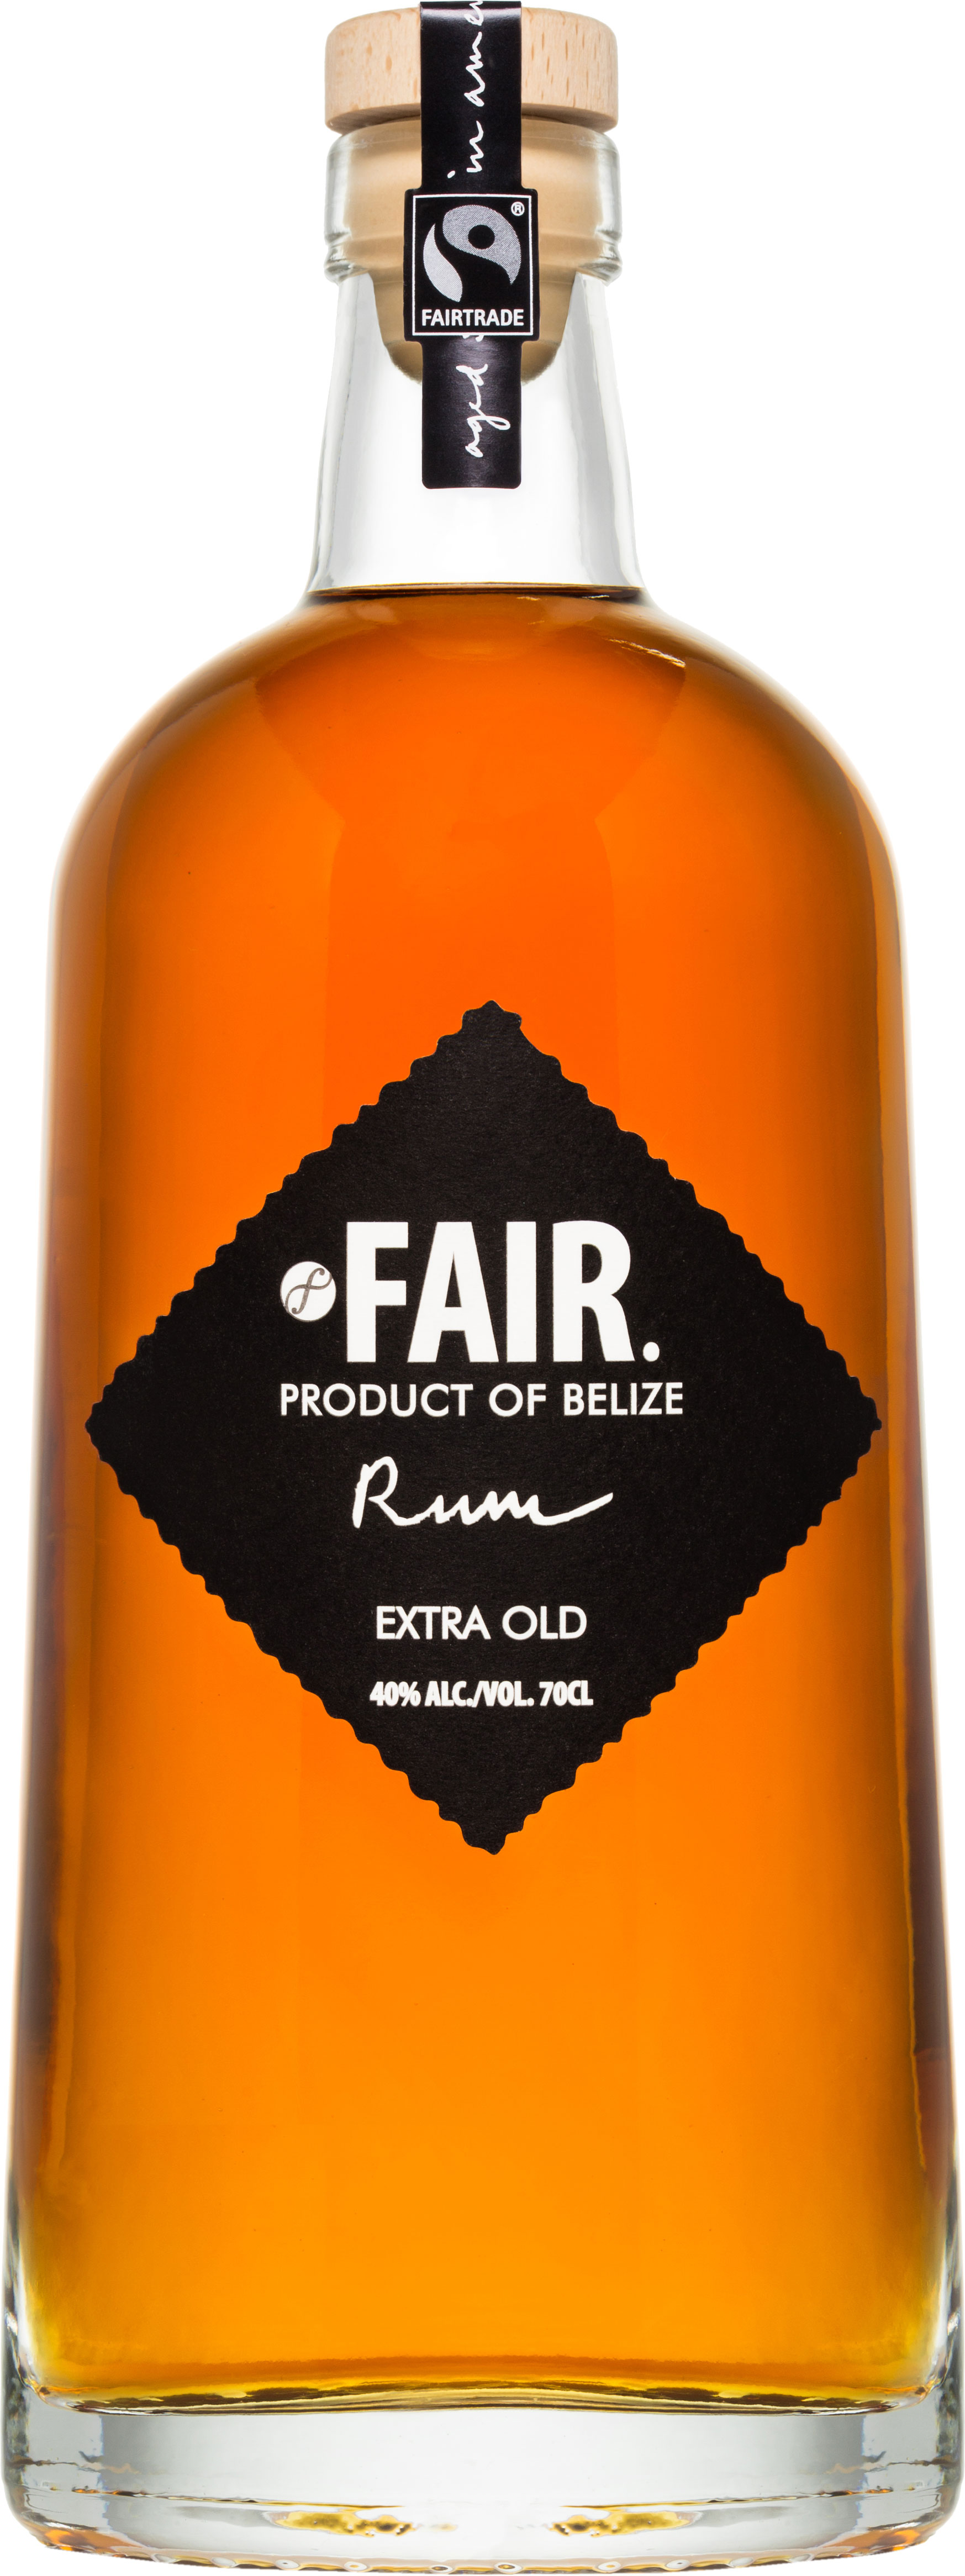 Fair - Belize 5 Year Old Rum 70cl Bottle